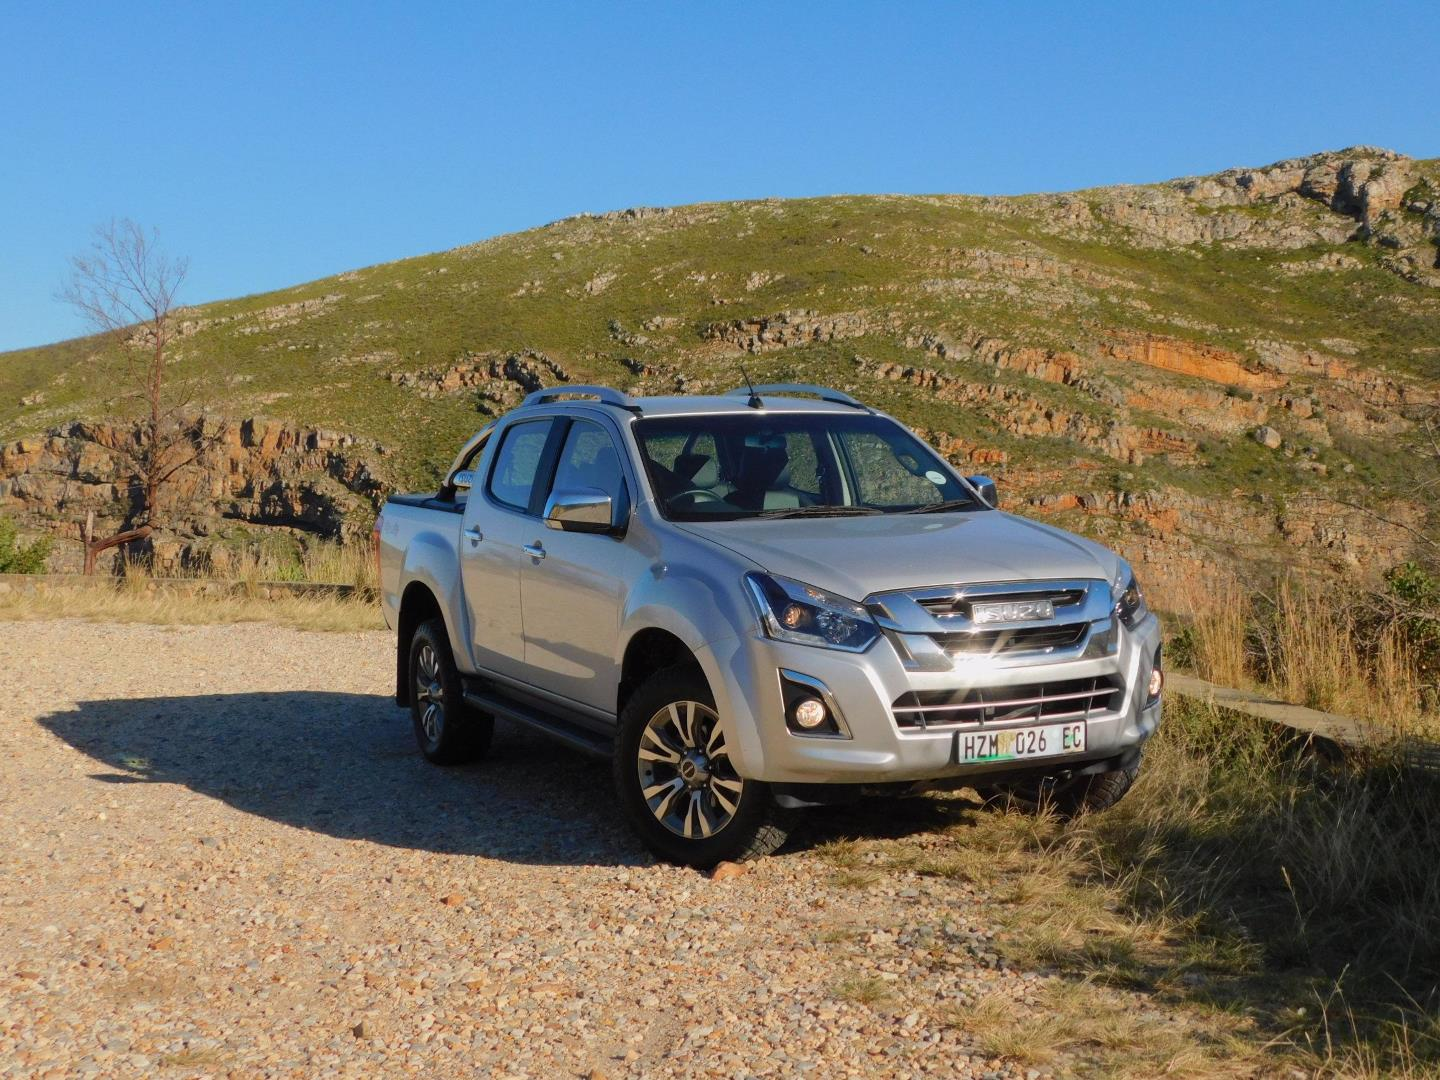 Isuzu KB300 D-Teq double cab 4x4 LX - Your friend in leisure, and